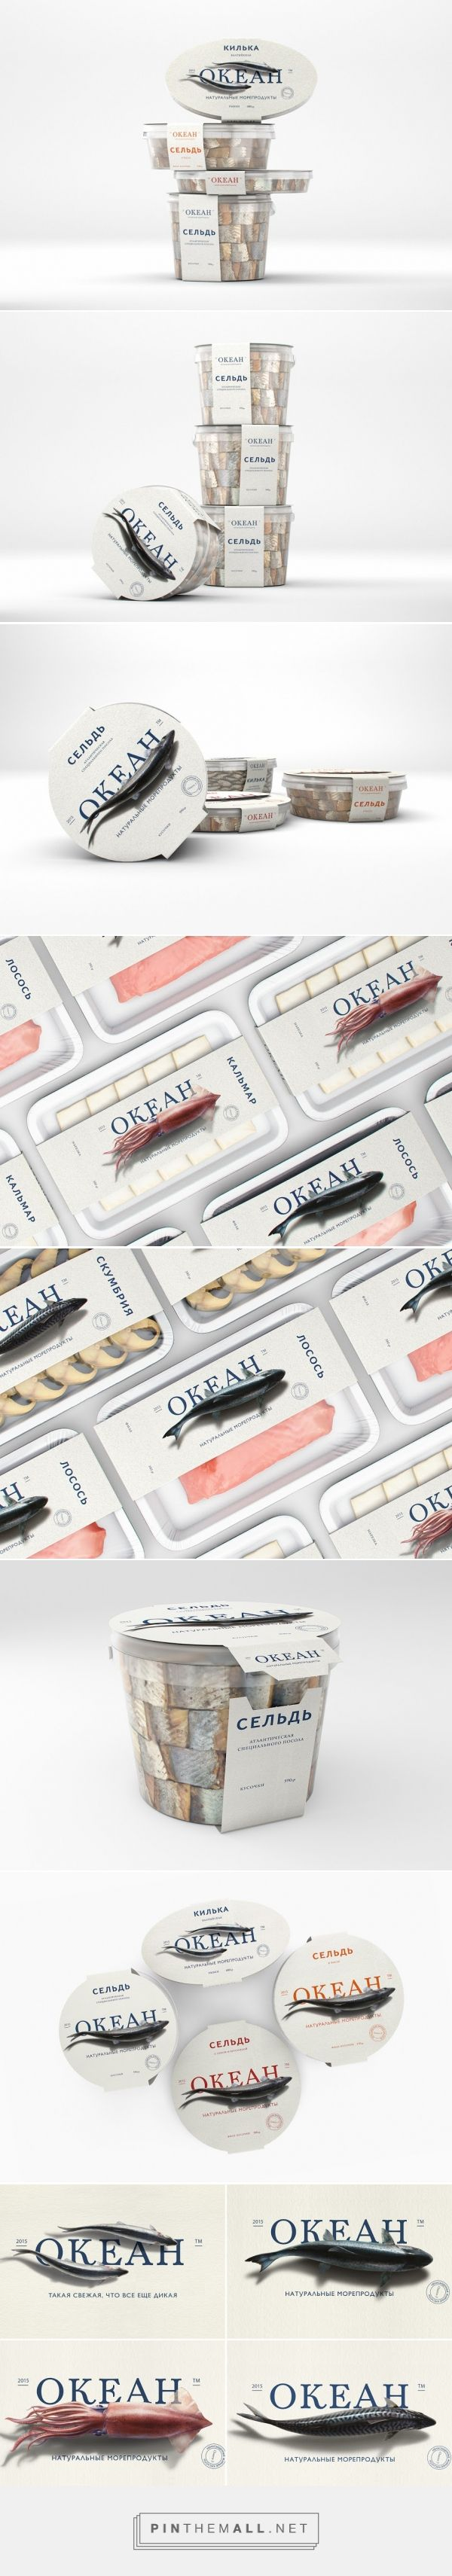 Ocean Seafood Packaging Design by Jekyll and Hyde (Russia) - http://www.packagingoftheworld.com/2016/05/ocean.html